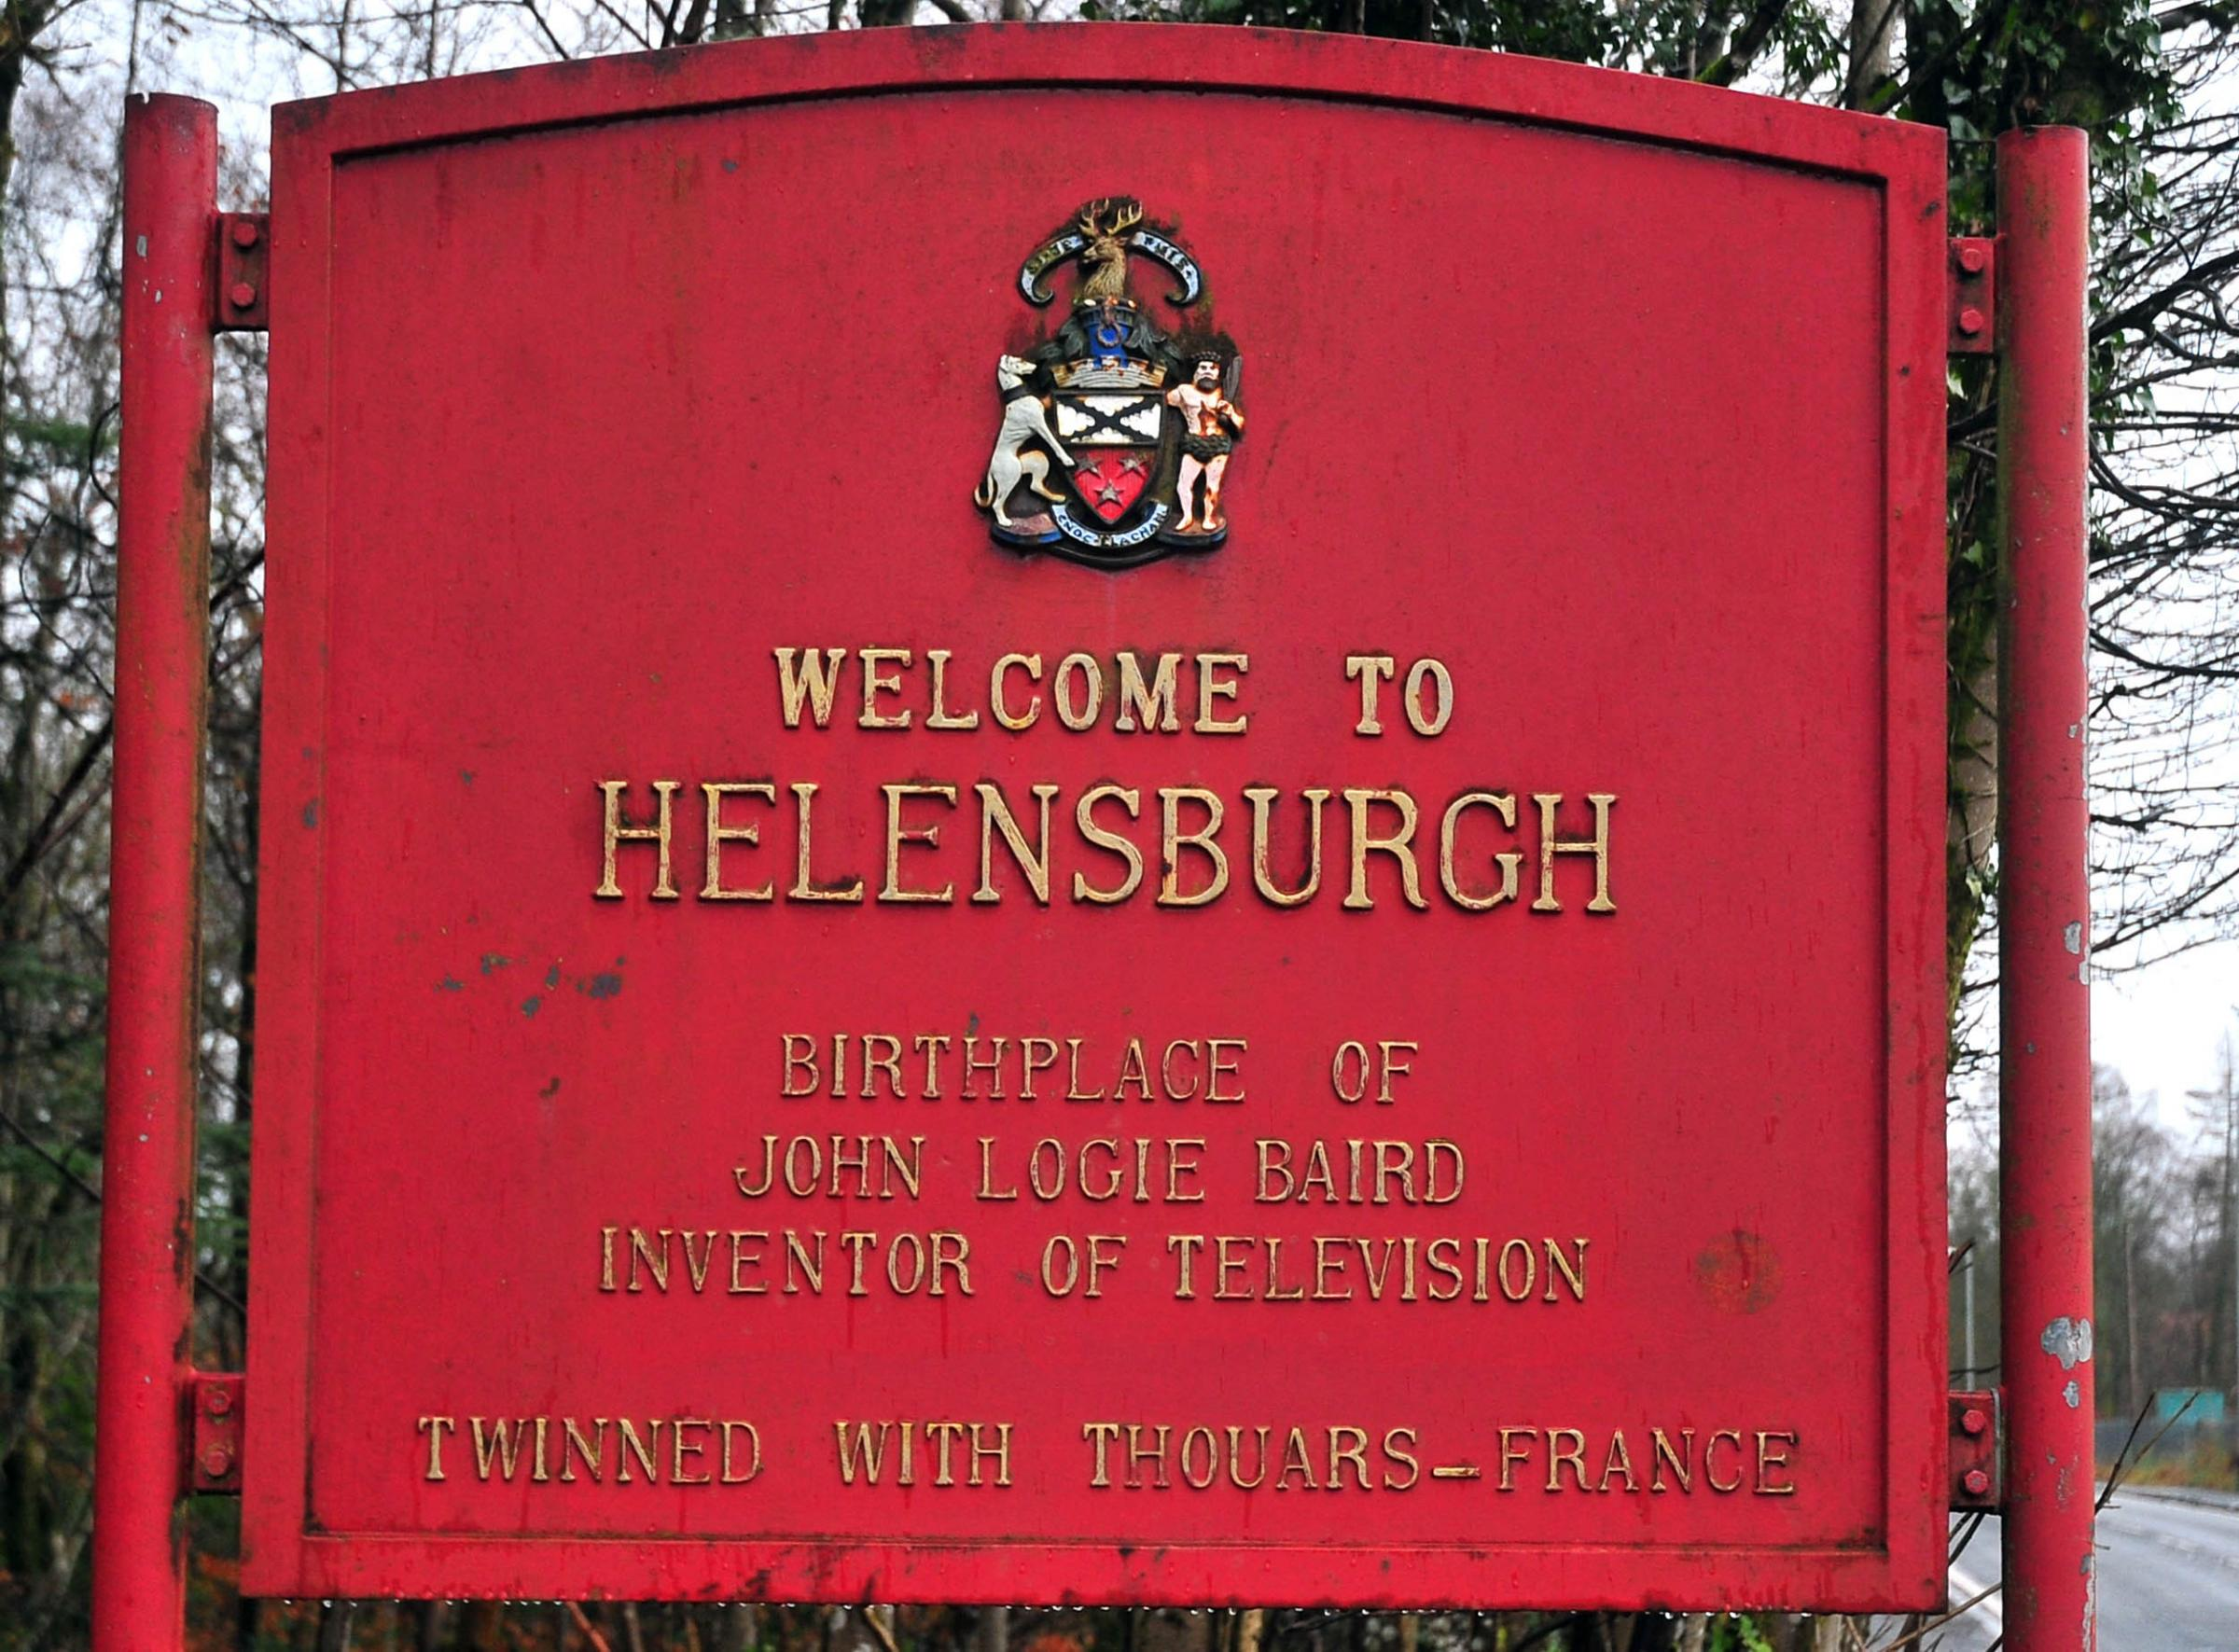 One of Helensburgh's welcome signs proclaiming the link with Thouars